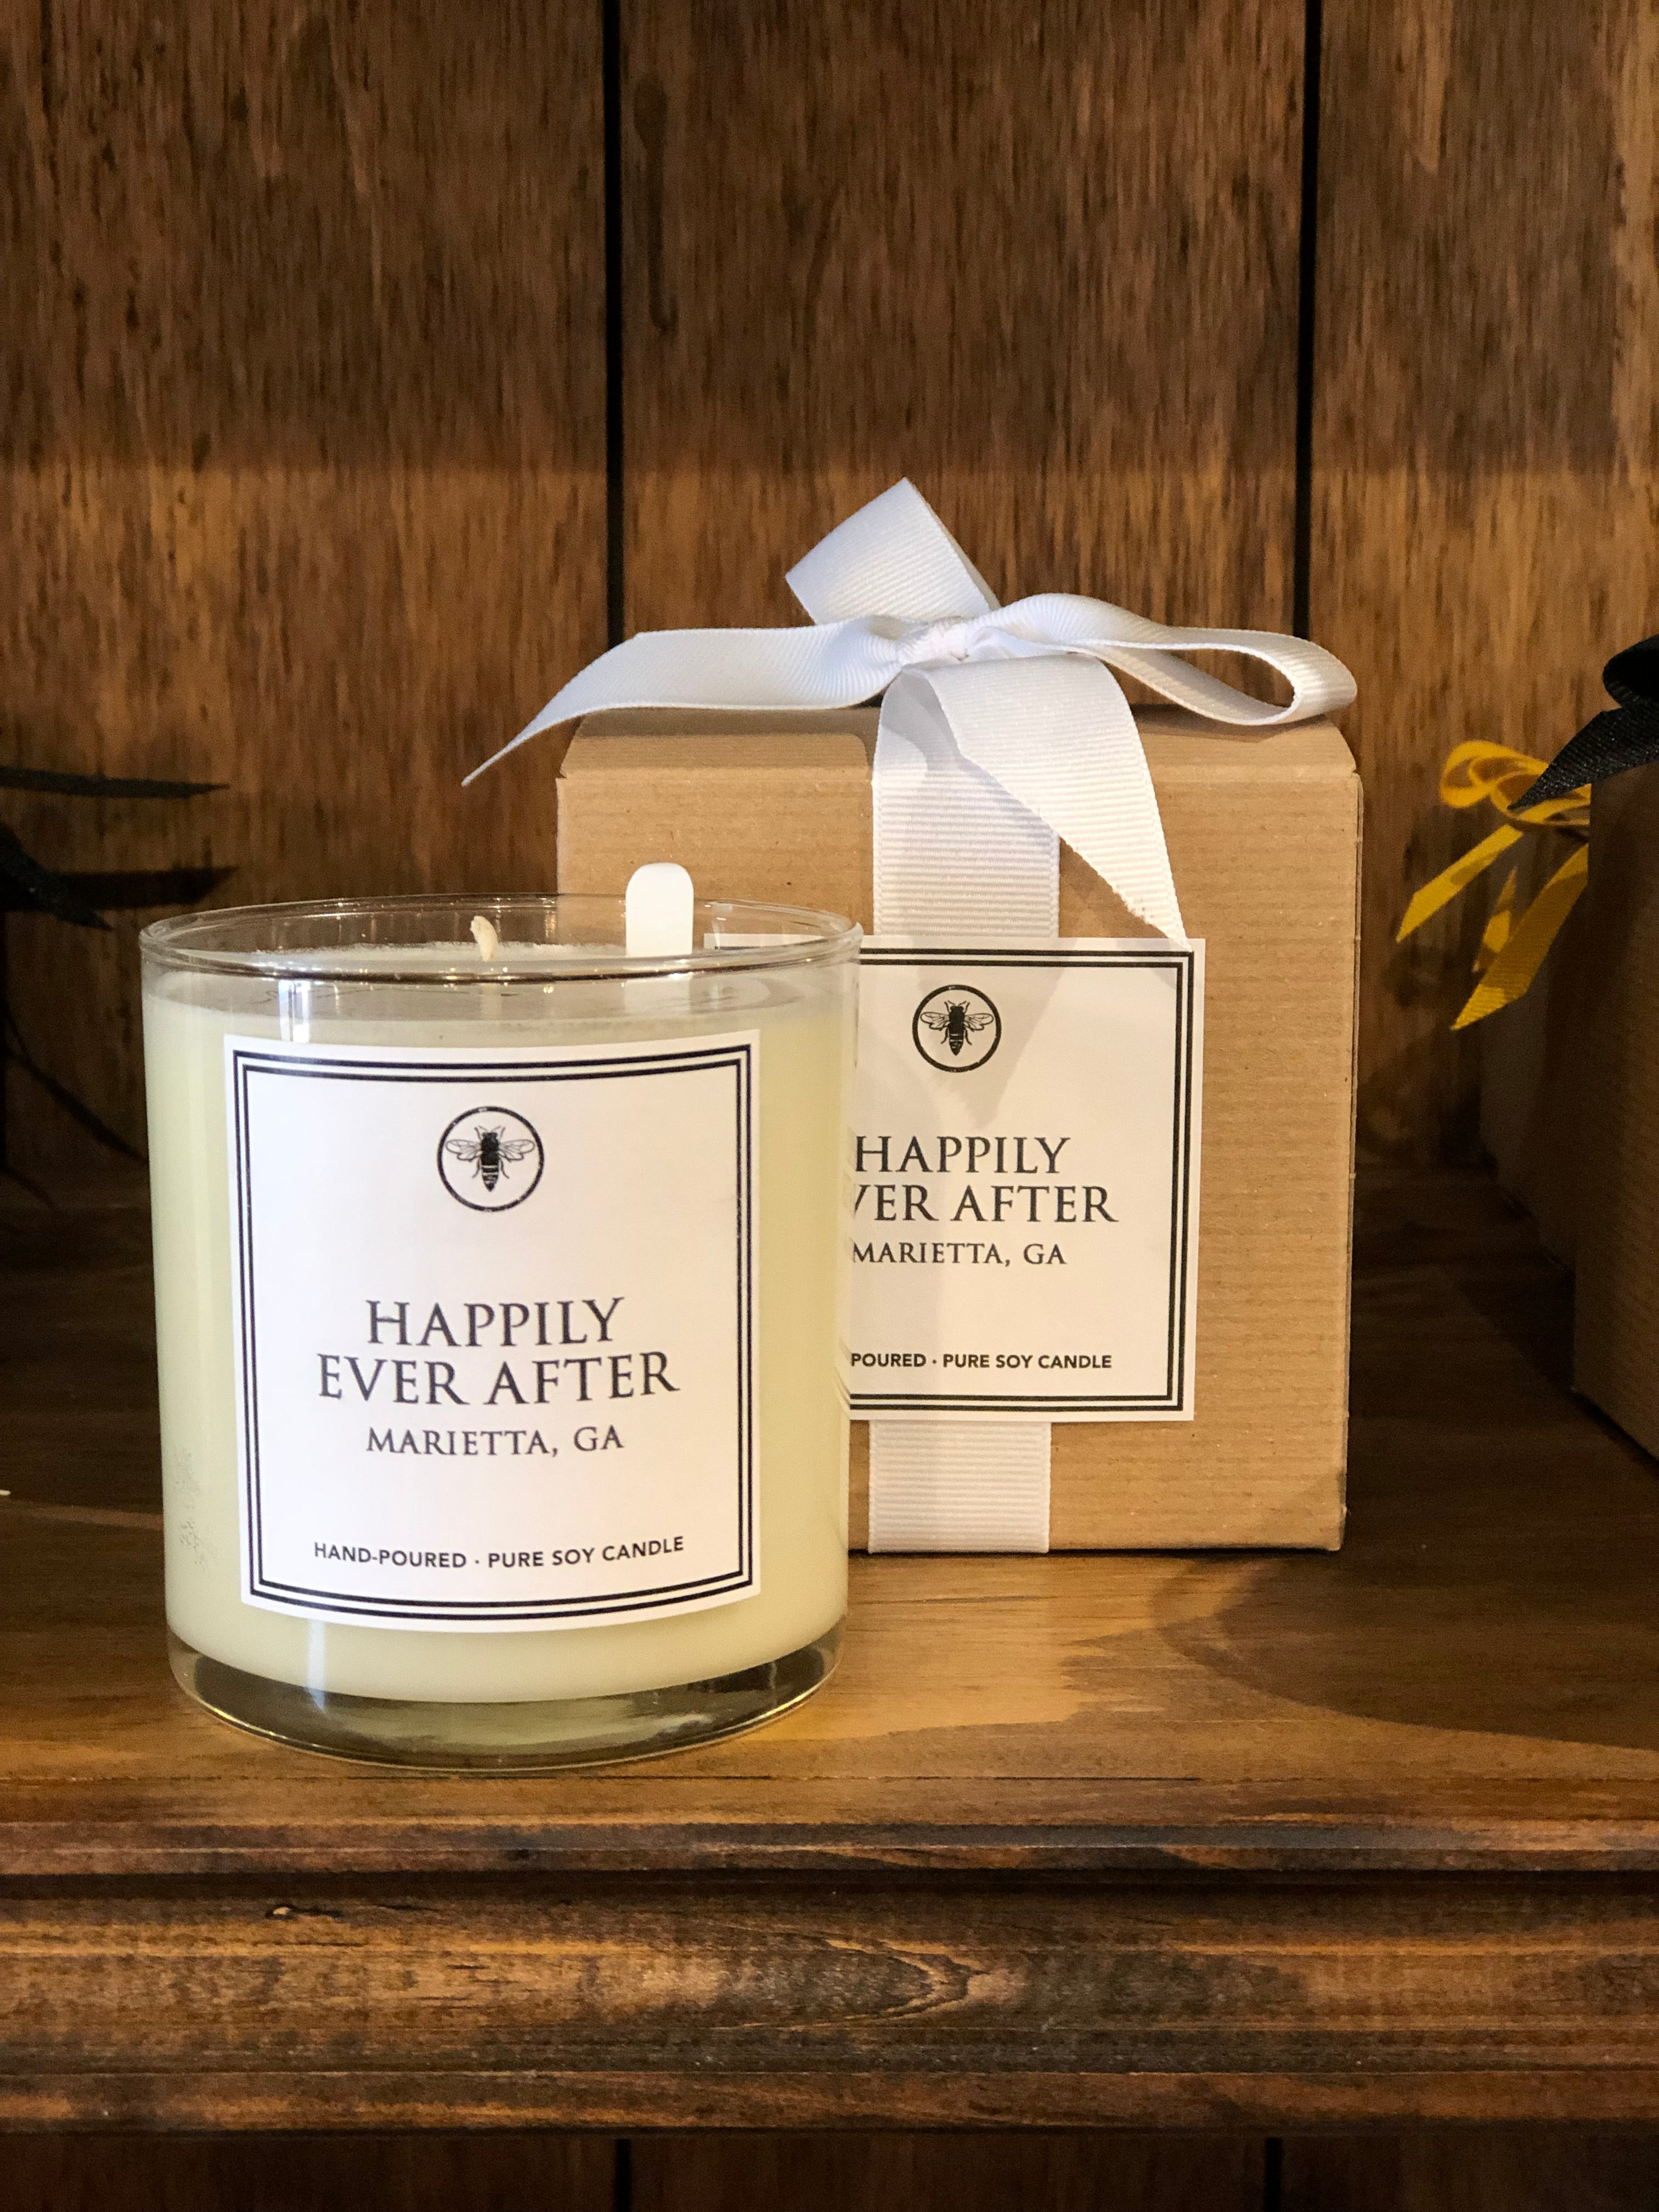 Happily Ever After in Marietta Georgia Candle